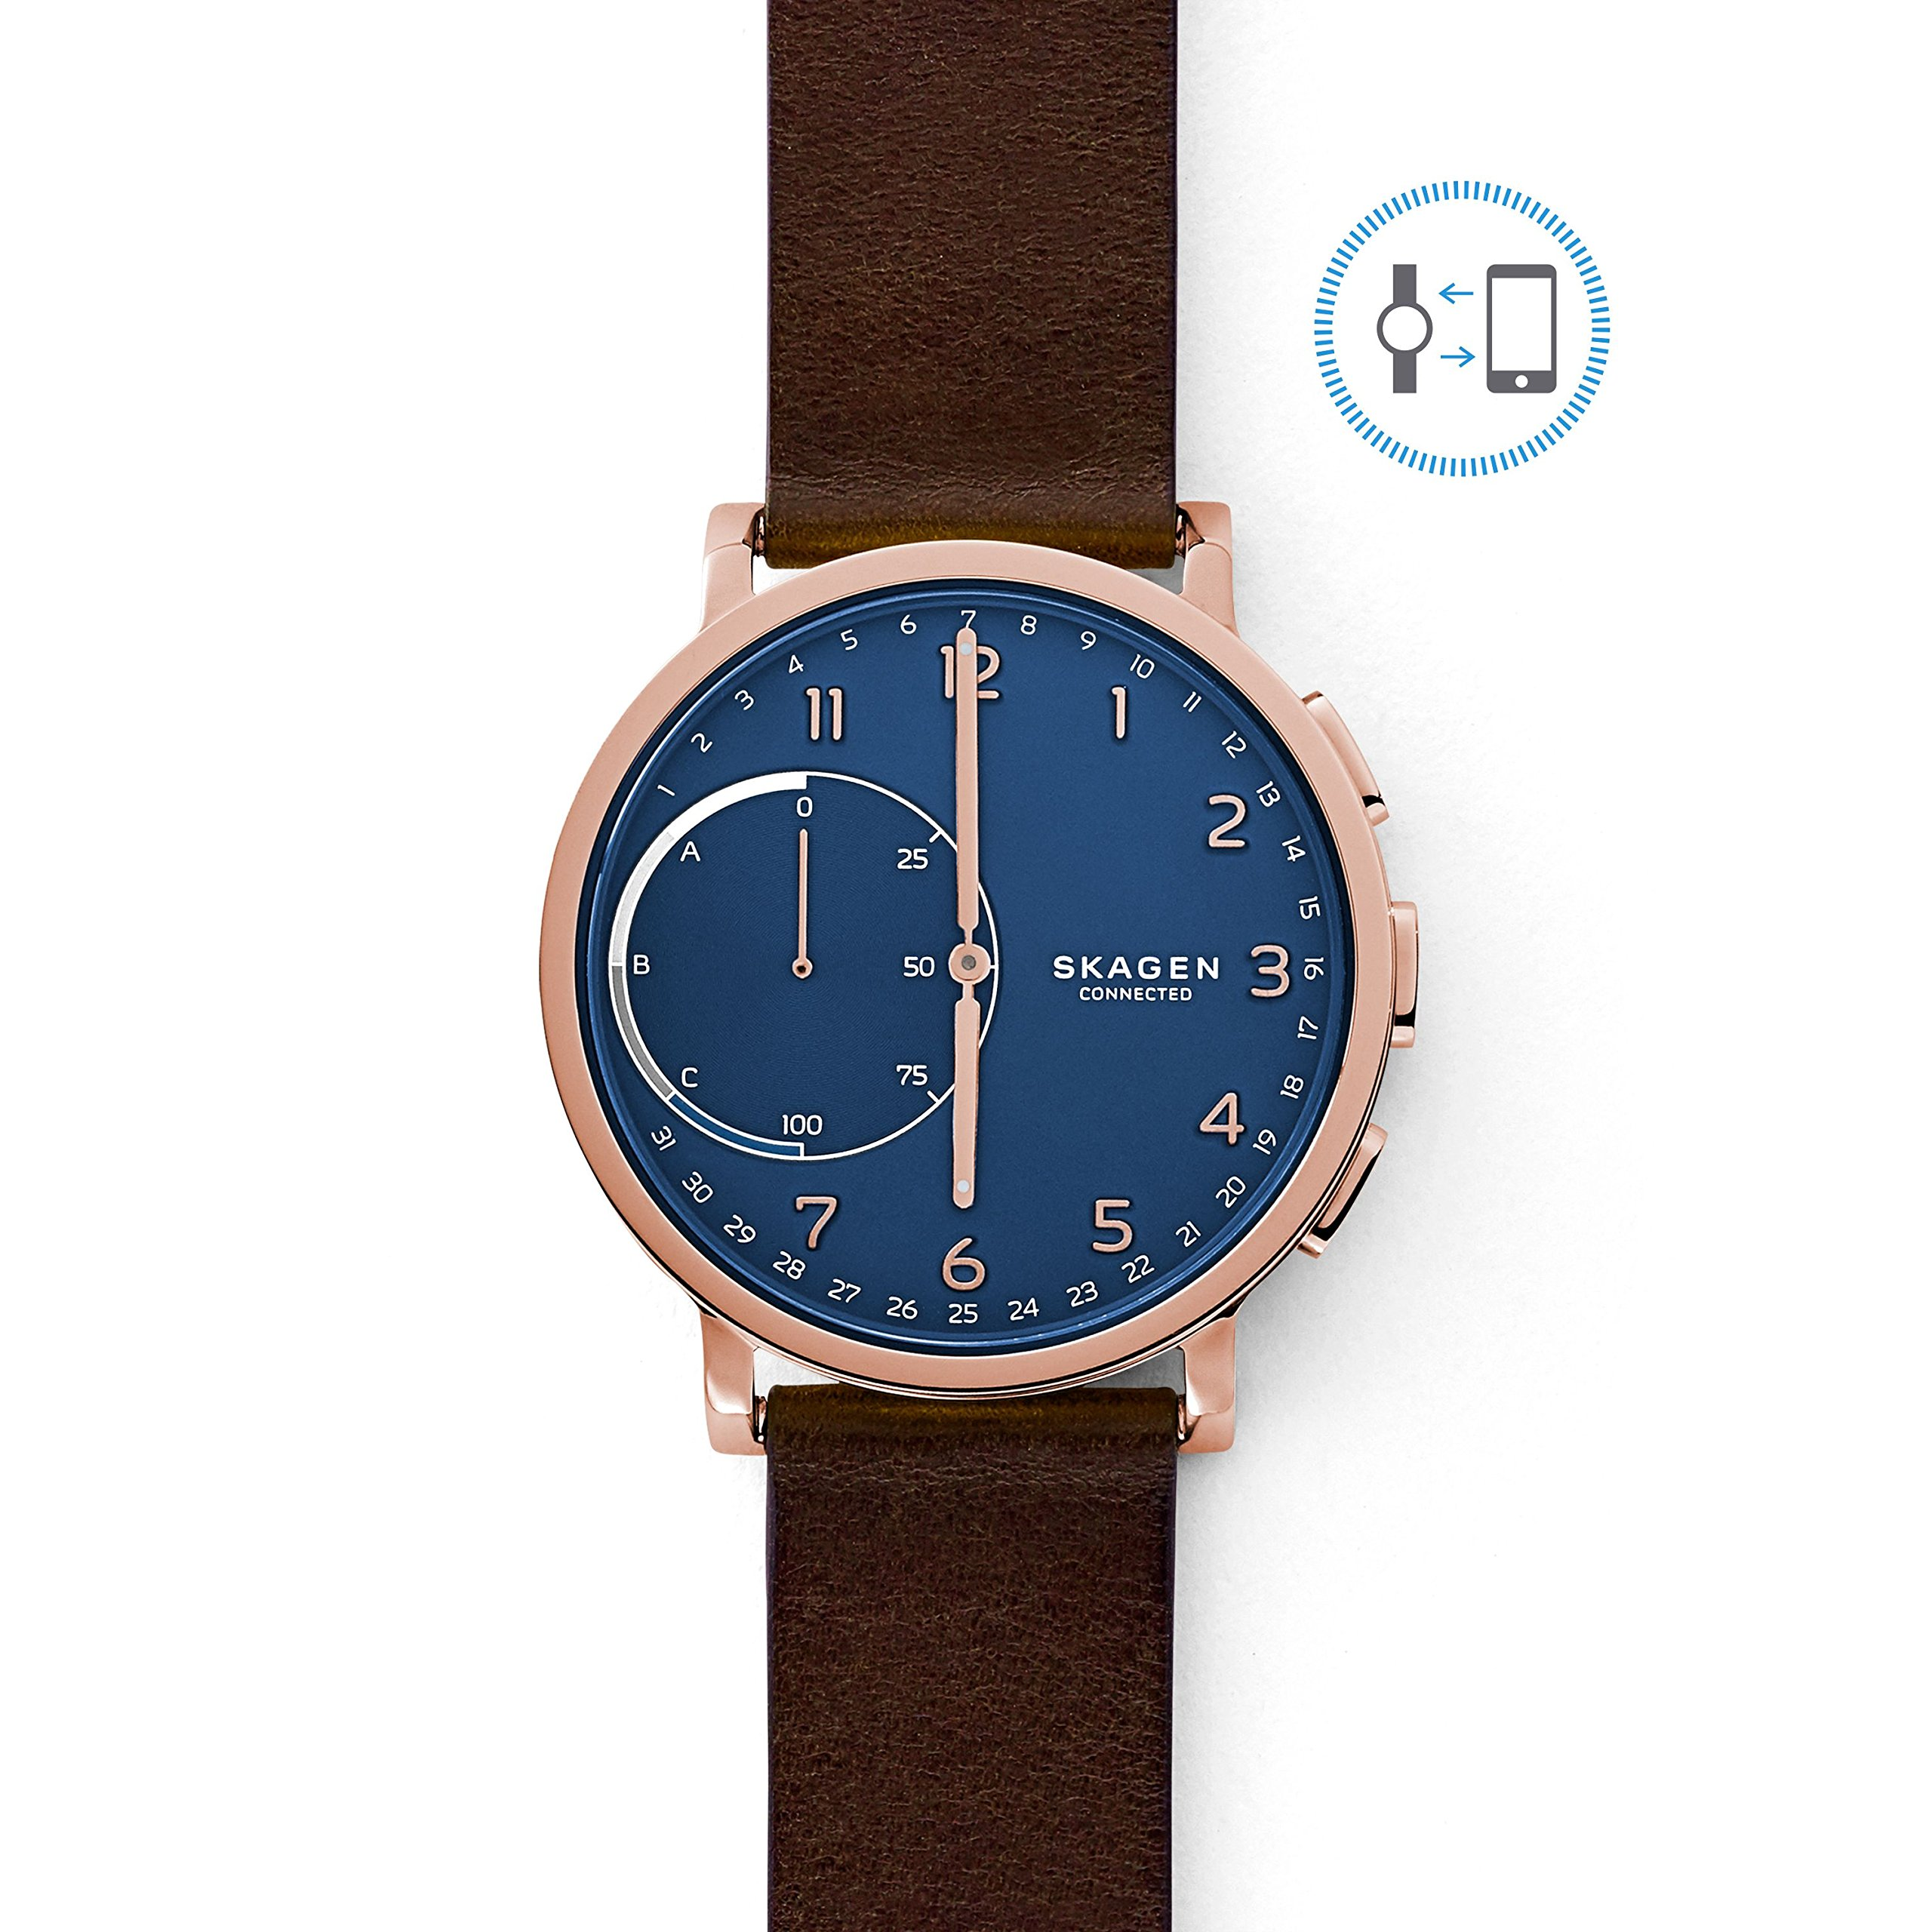 Skagen Connected Men's Hagen Stainless Steel and Leather Hybrid Smartwatch, Color: Rose Gold, Dark Brown (SKT1103)